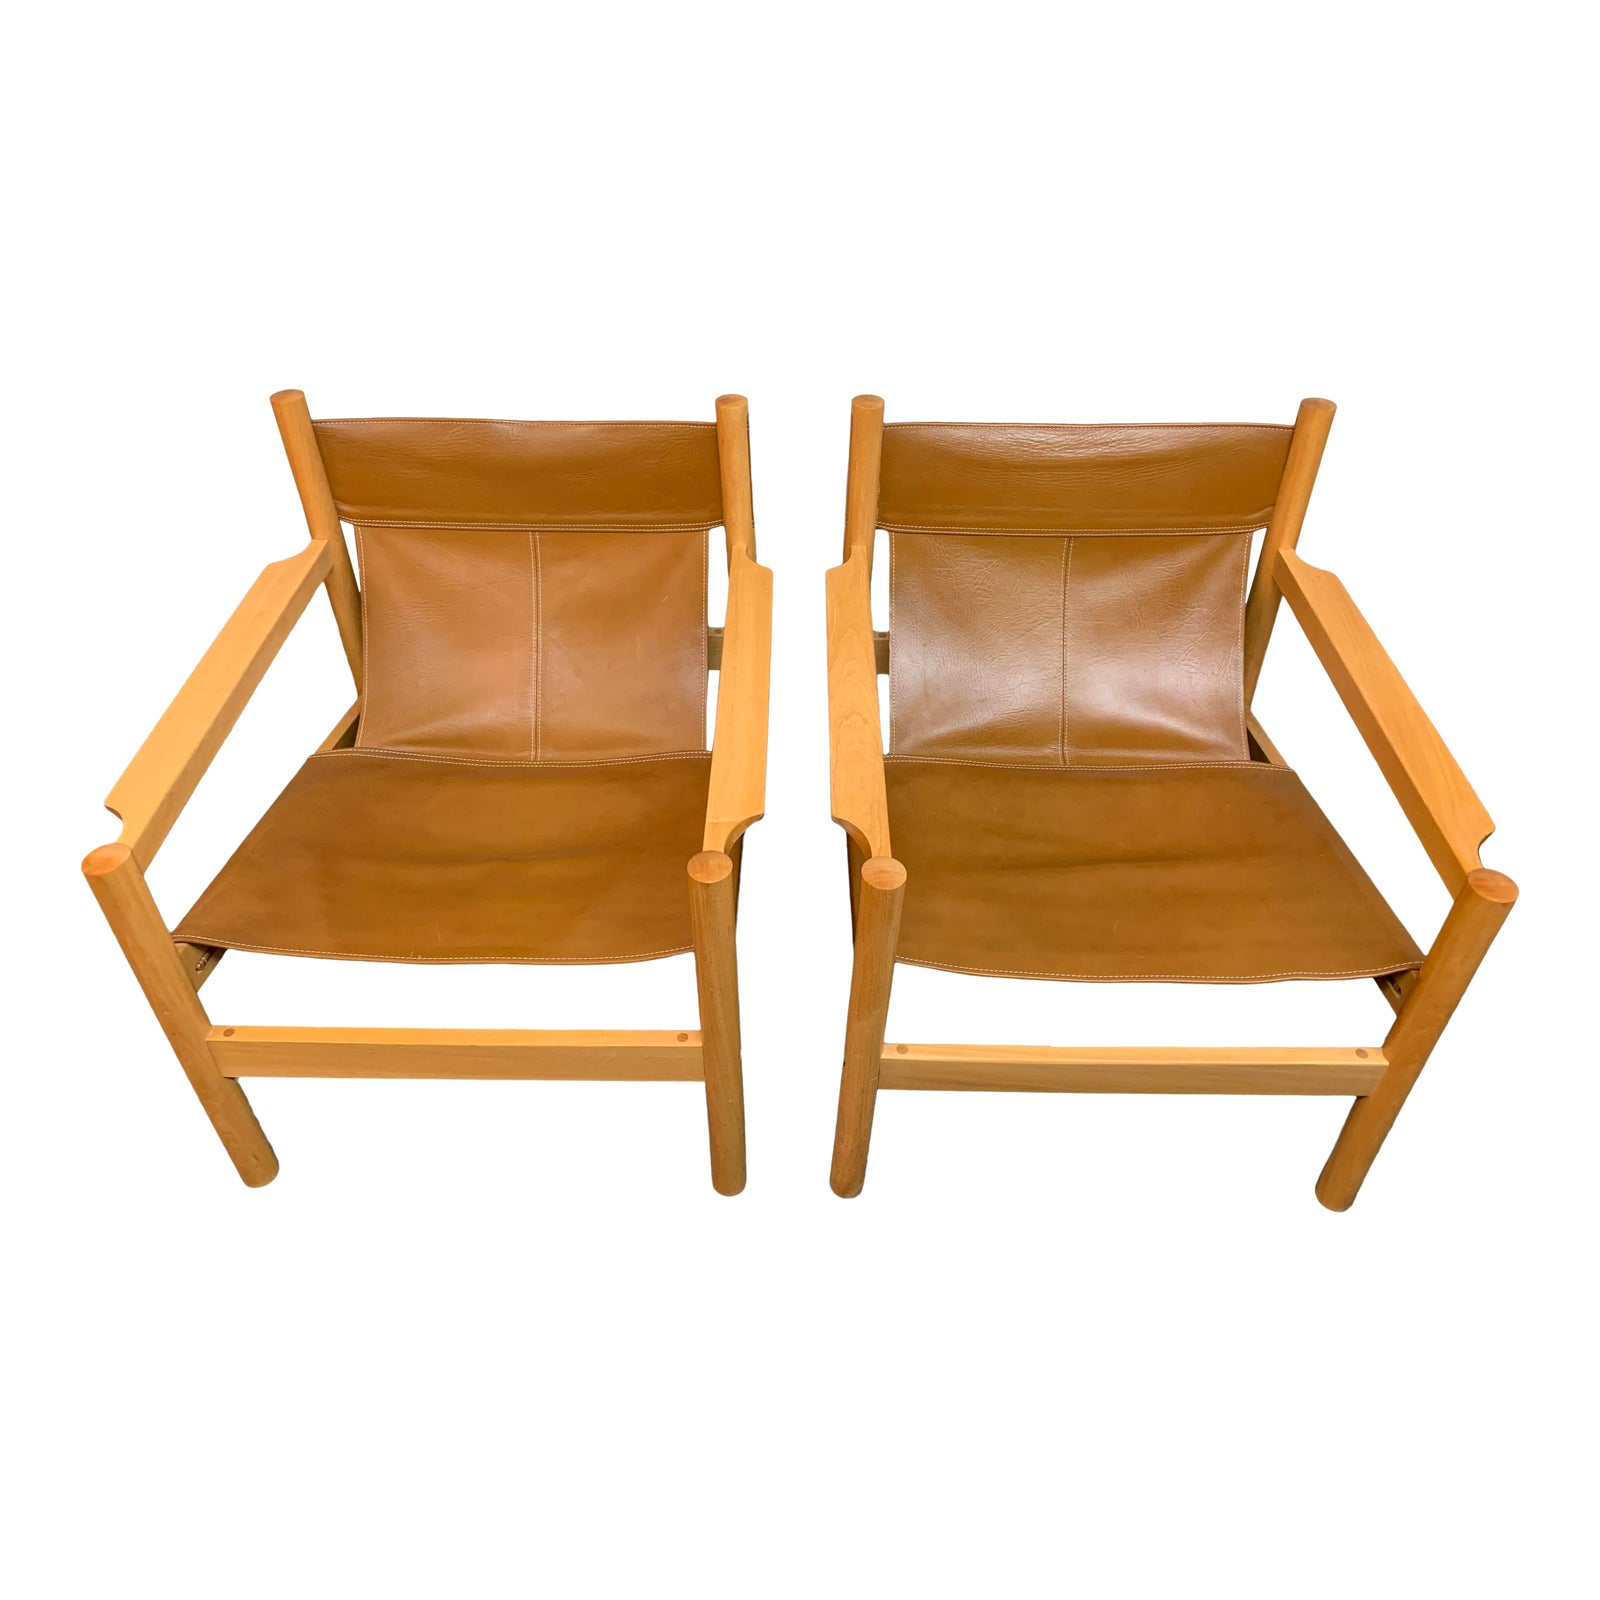 Swell Michel Arnoult Leather Sling Chairs A Pair Original Price 5 200 Uwap Interior Chair Design Uwaporg